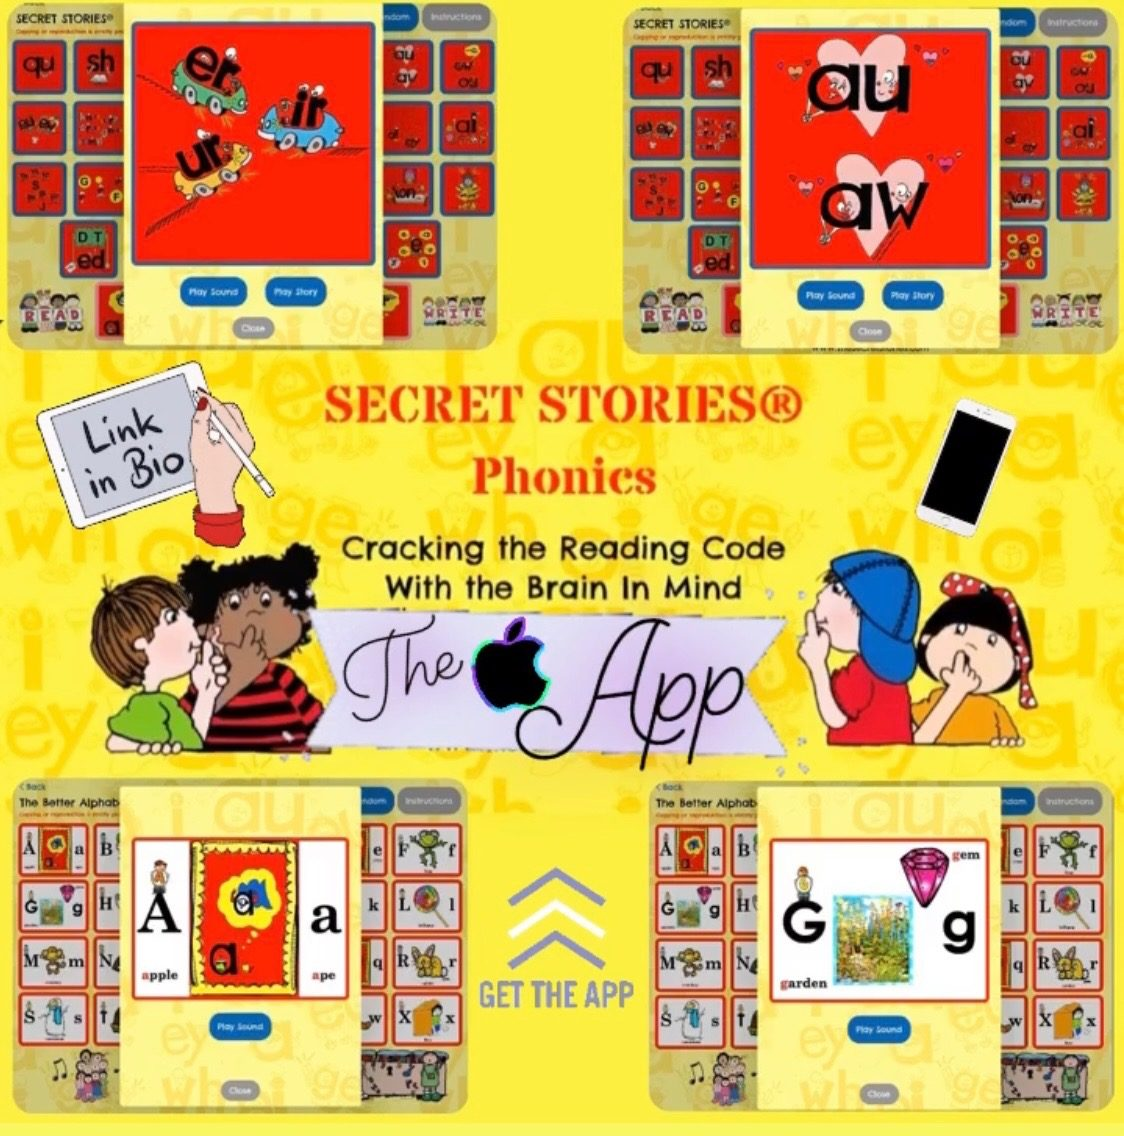 Secret Stories Phonics App